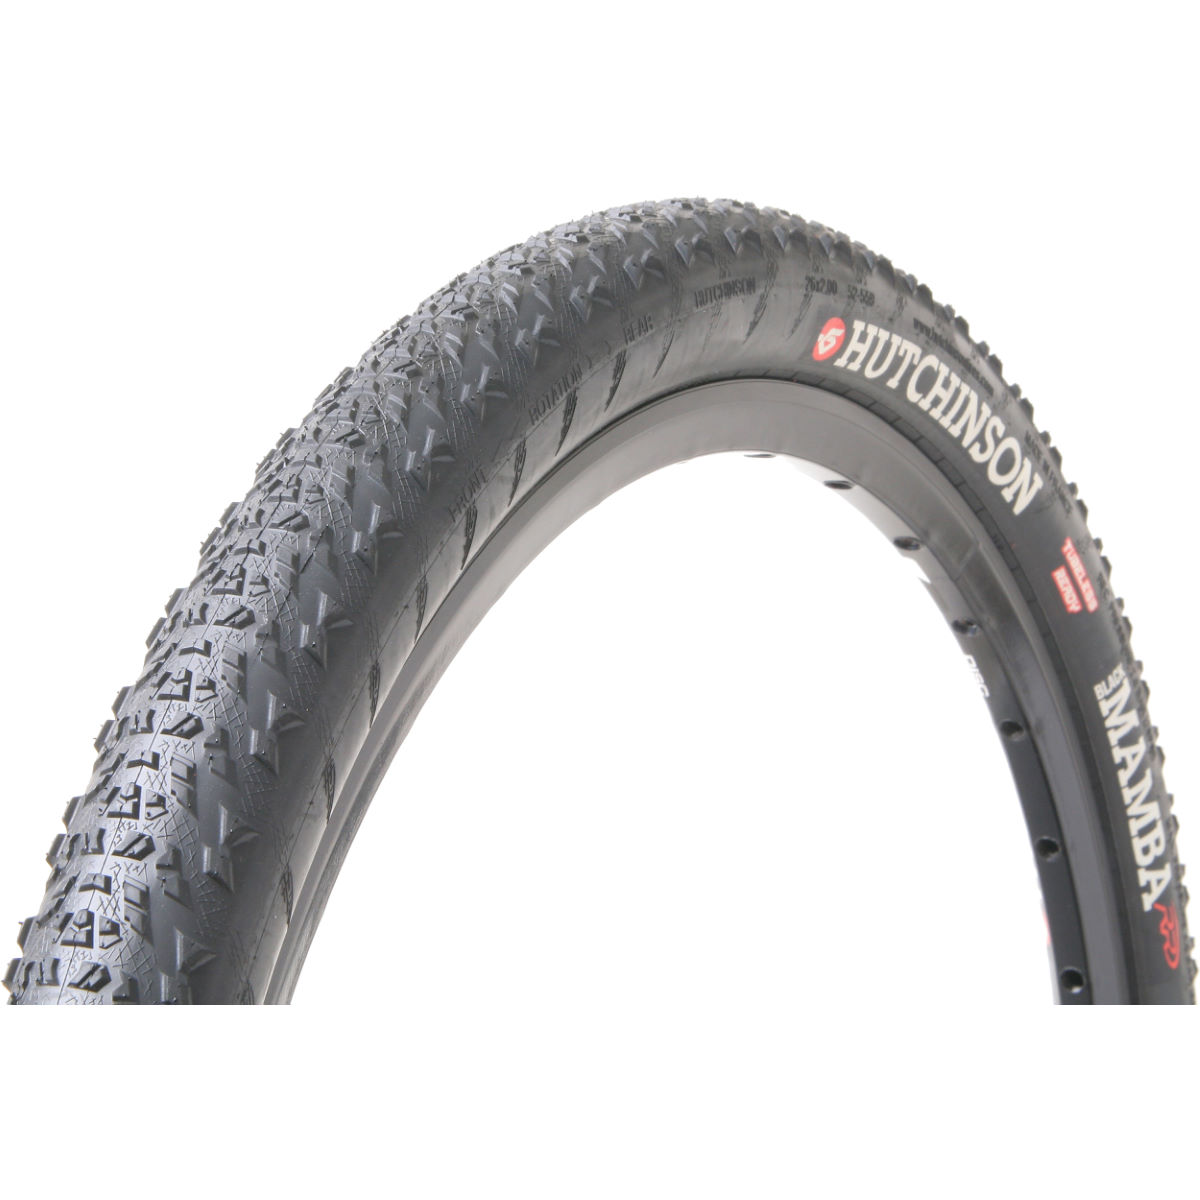 Boyau de cyclo-cross Hutchinson Black Mamba - 700 x 32c 700c Noir